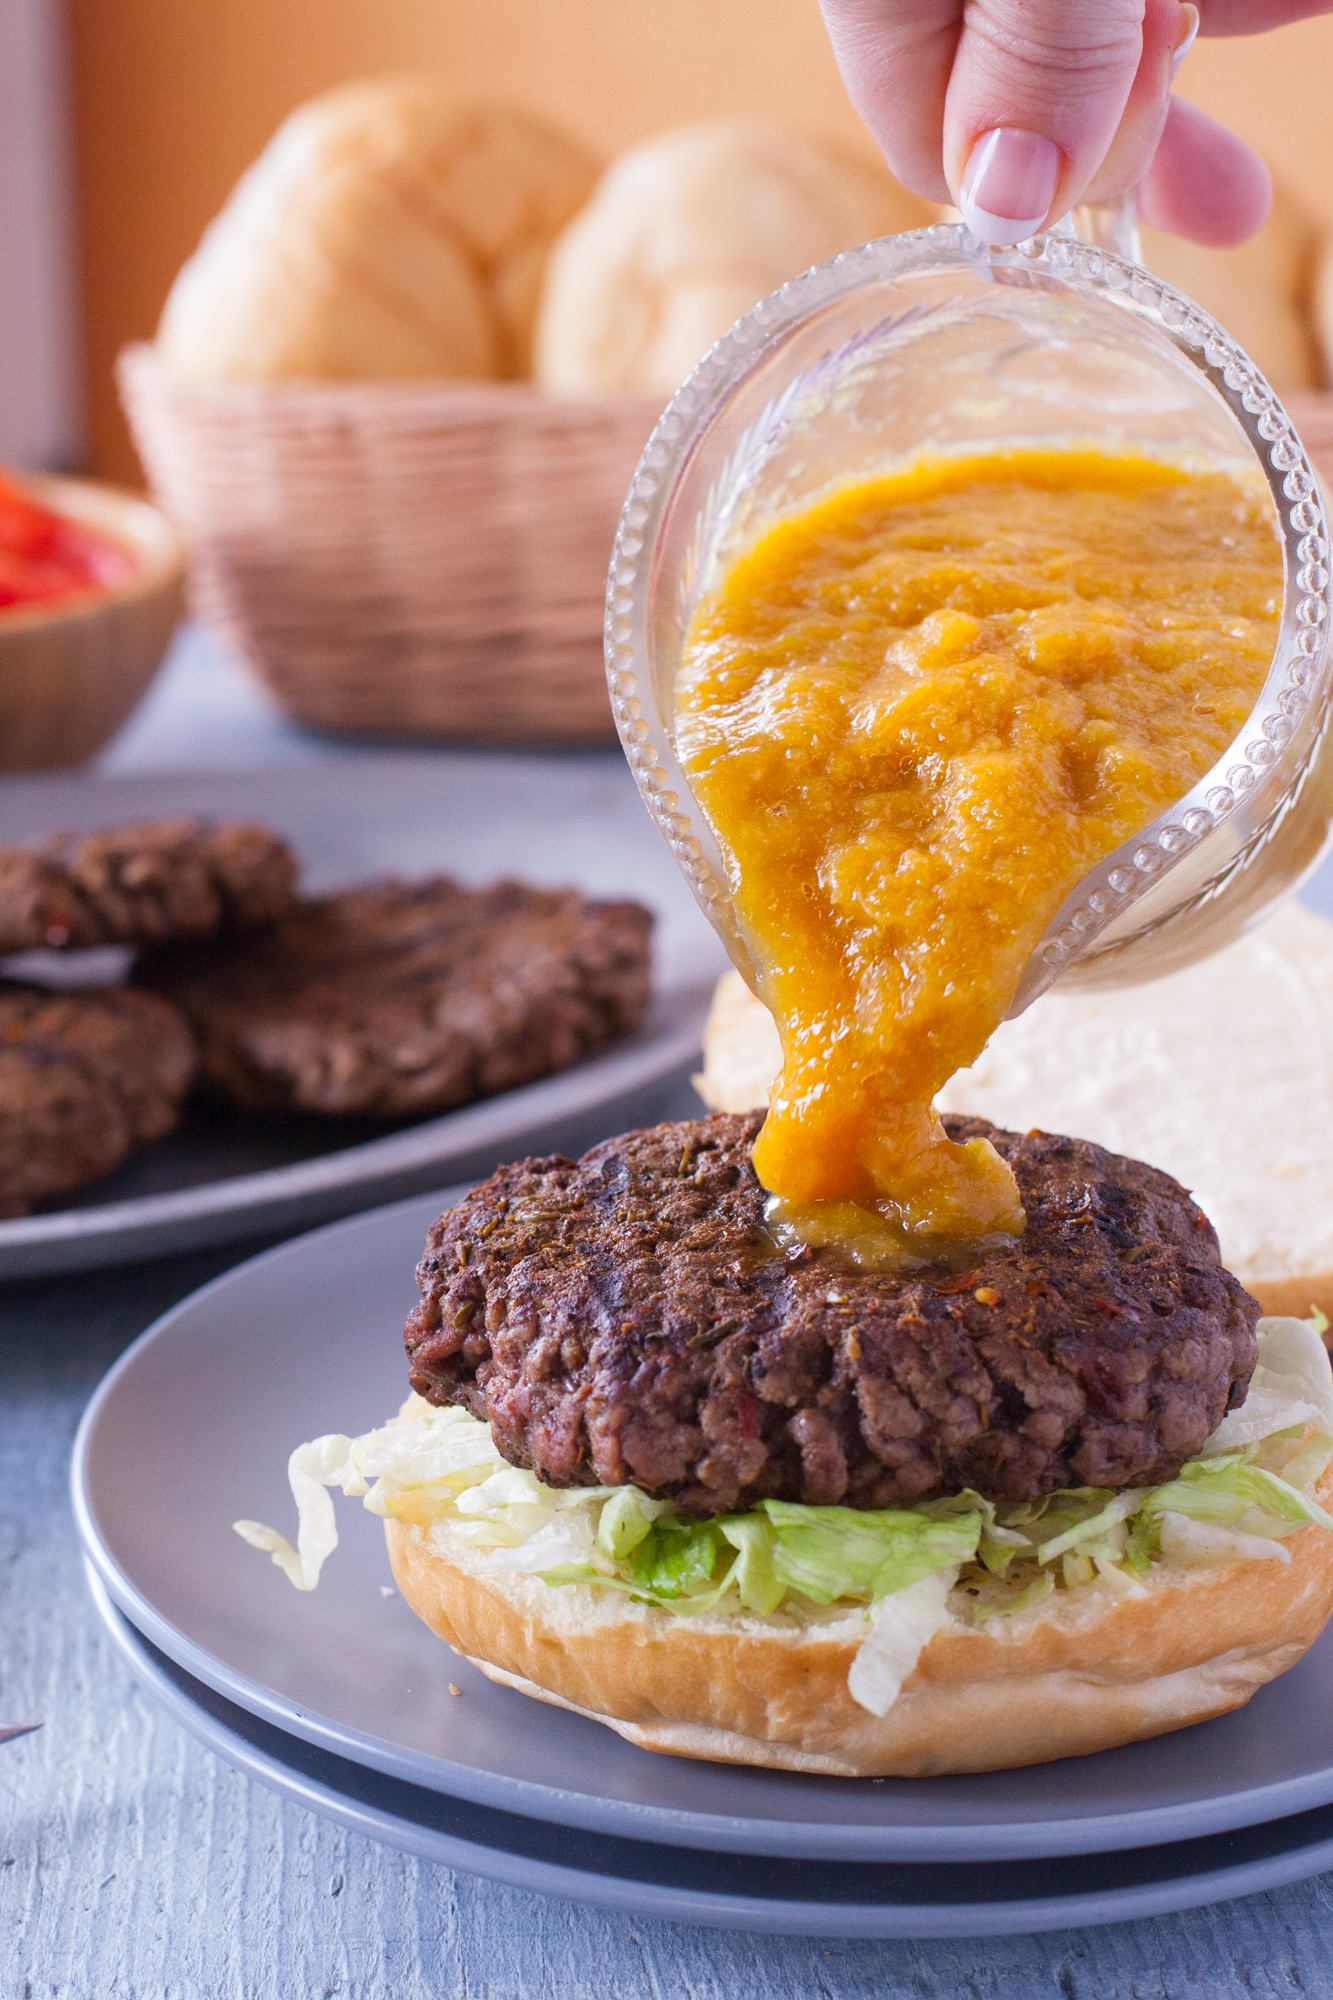 This Jamaican burger recipe will blow your mind! It's a Jamaican jerk seasoned burger topped with spicy pineapple sauce, sweet mango, and red bell pepper. It's the stuff burger dreams are made of! From EatingRichly.com